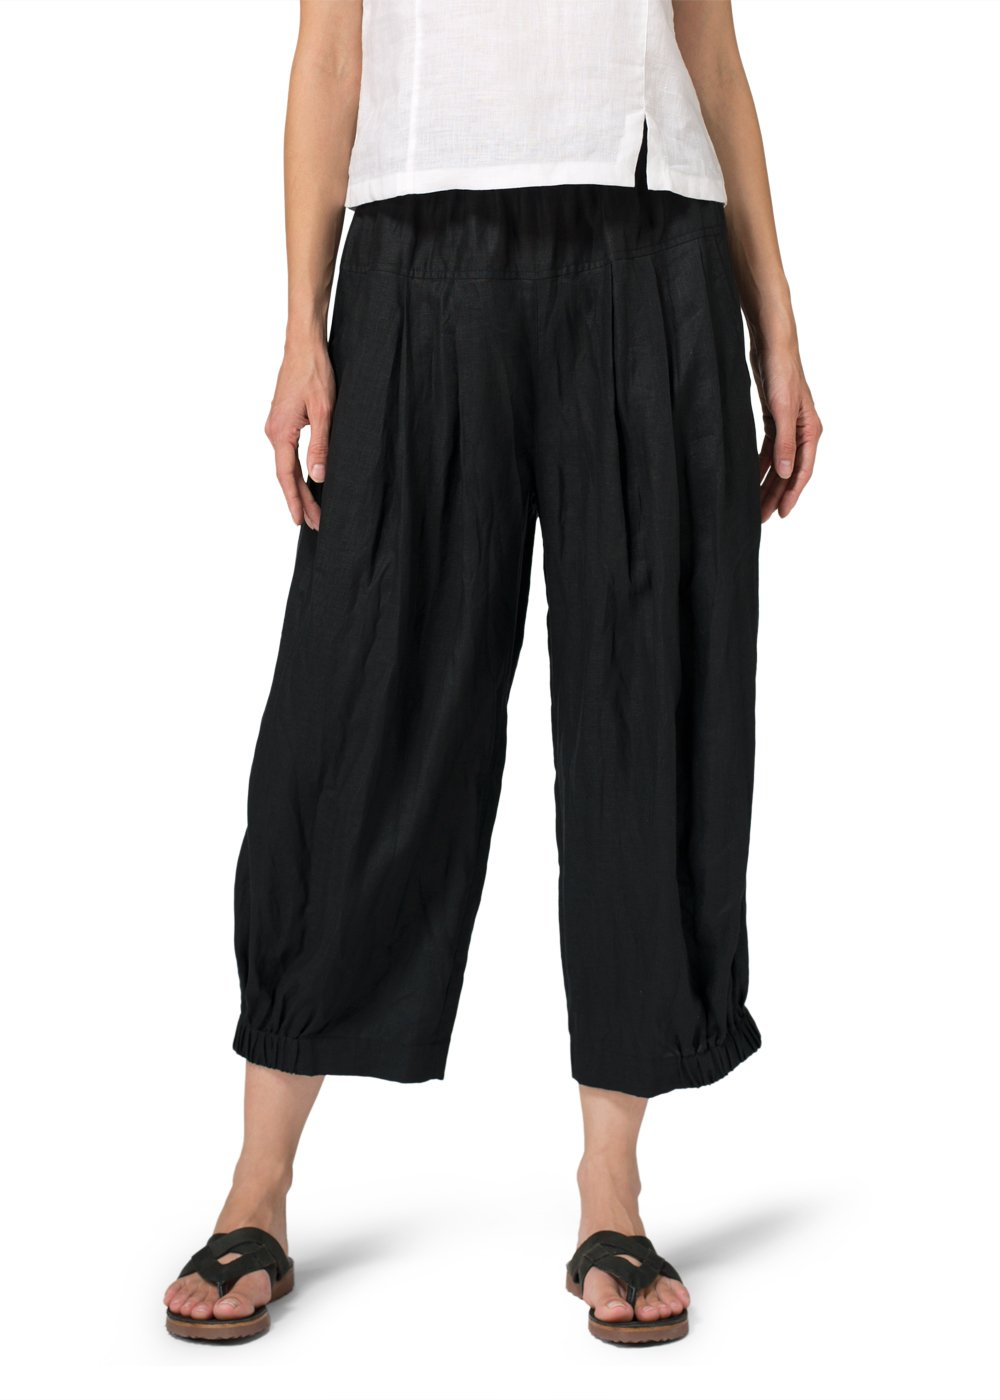 Vivid Linen Crumple Effect Harem Pants (Long)-XL-Black